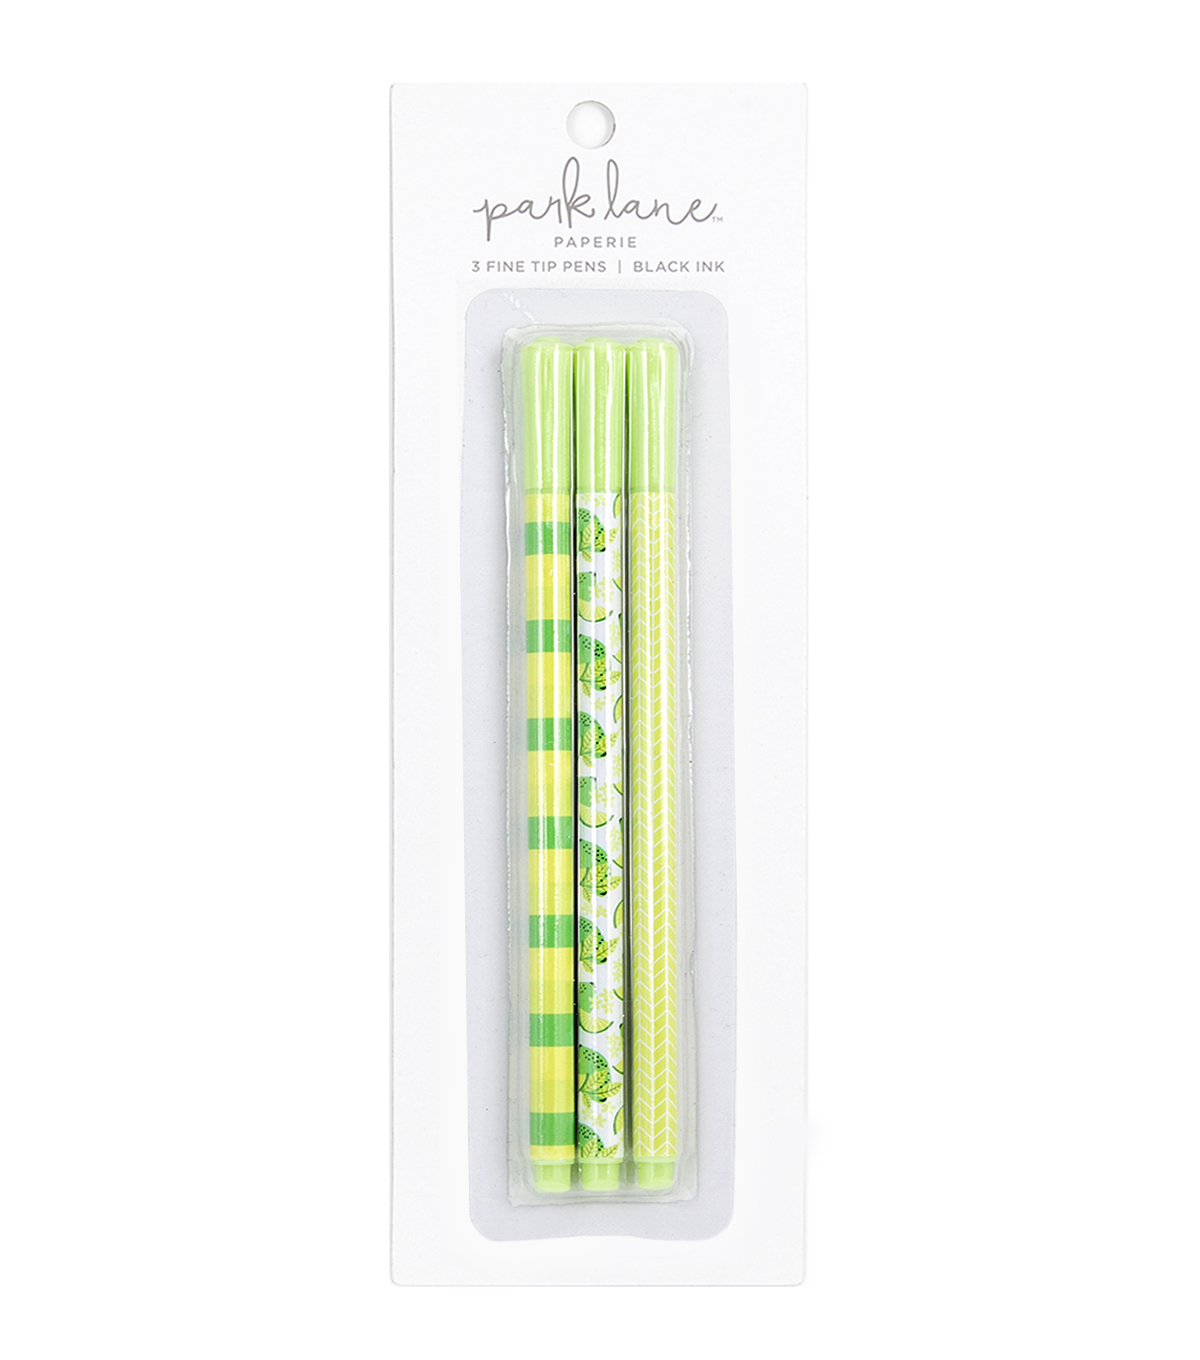 Park Lane 3 pk Fine Tip Black Ink Pens-Lime